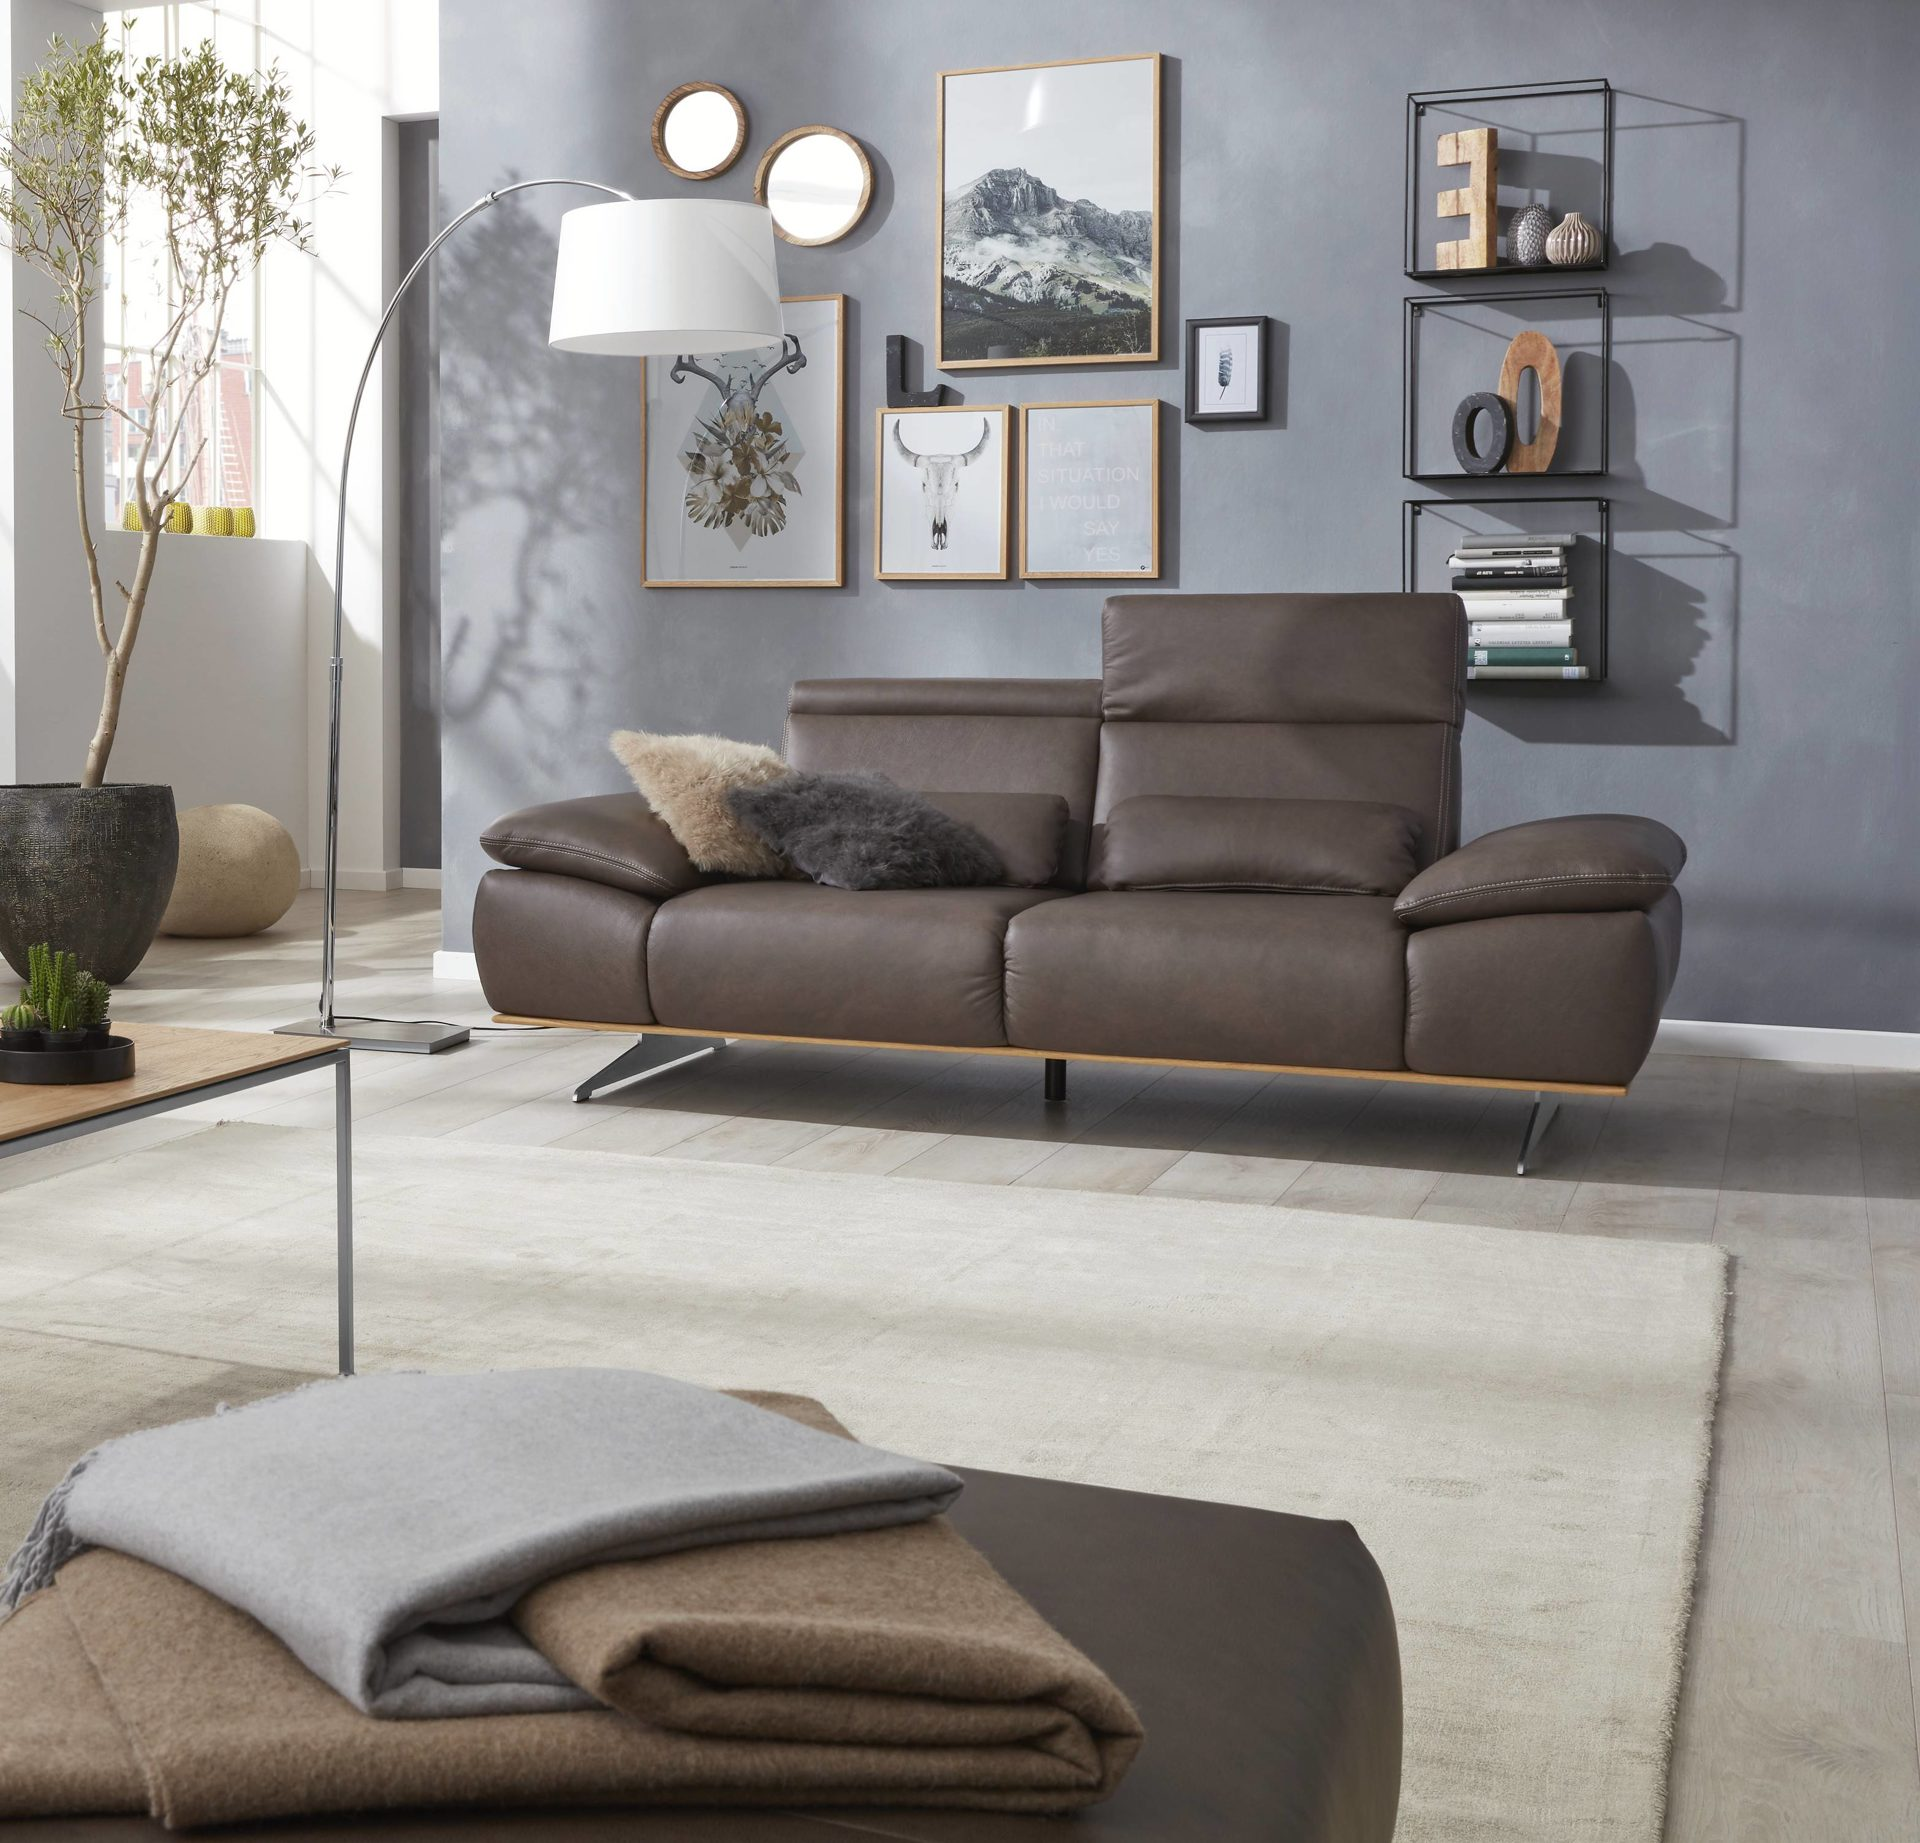 Interliving Sofa Serie 4350 2 5 Sitzer Braunes Leder Rodeo Goa Länge Ca